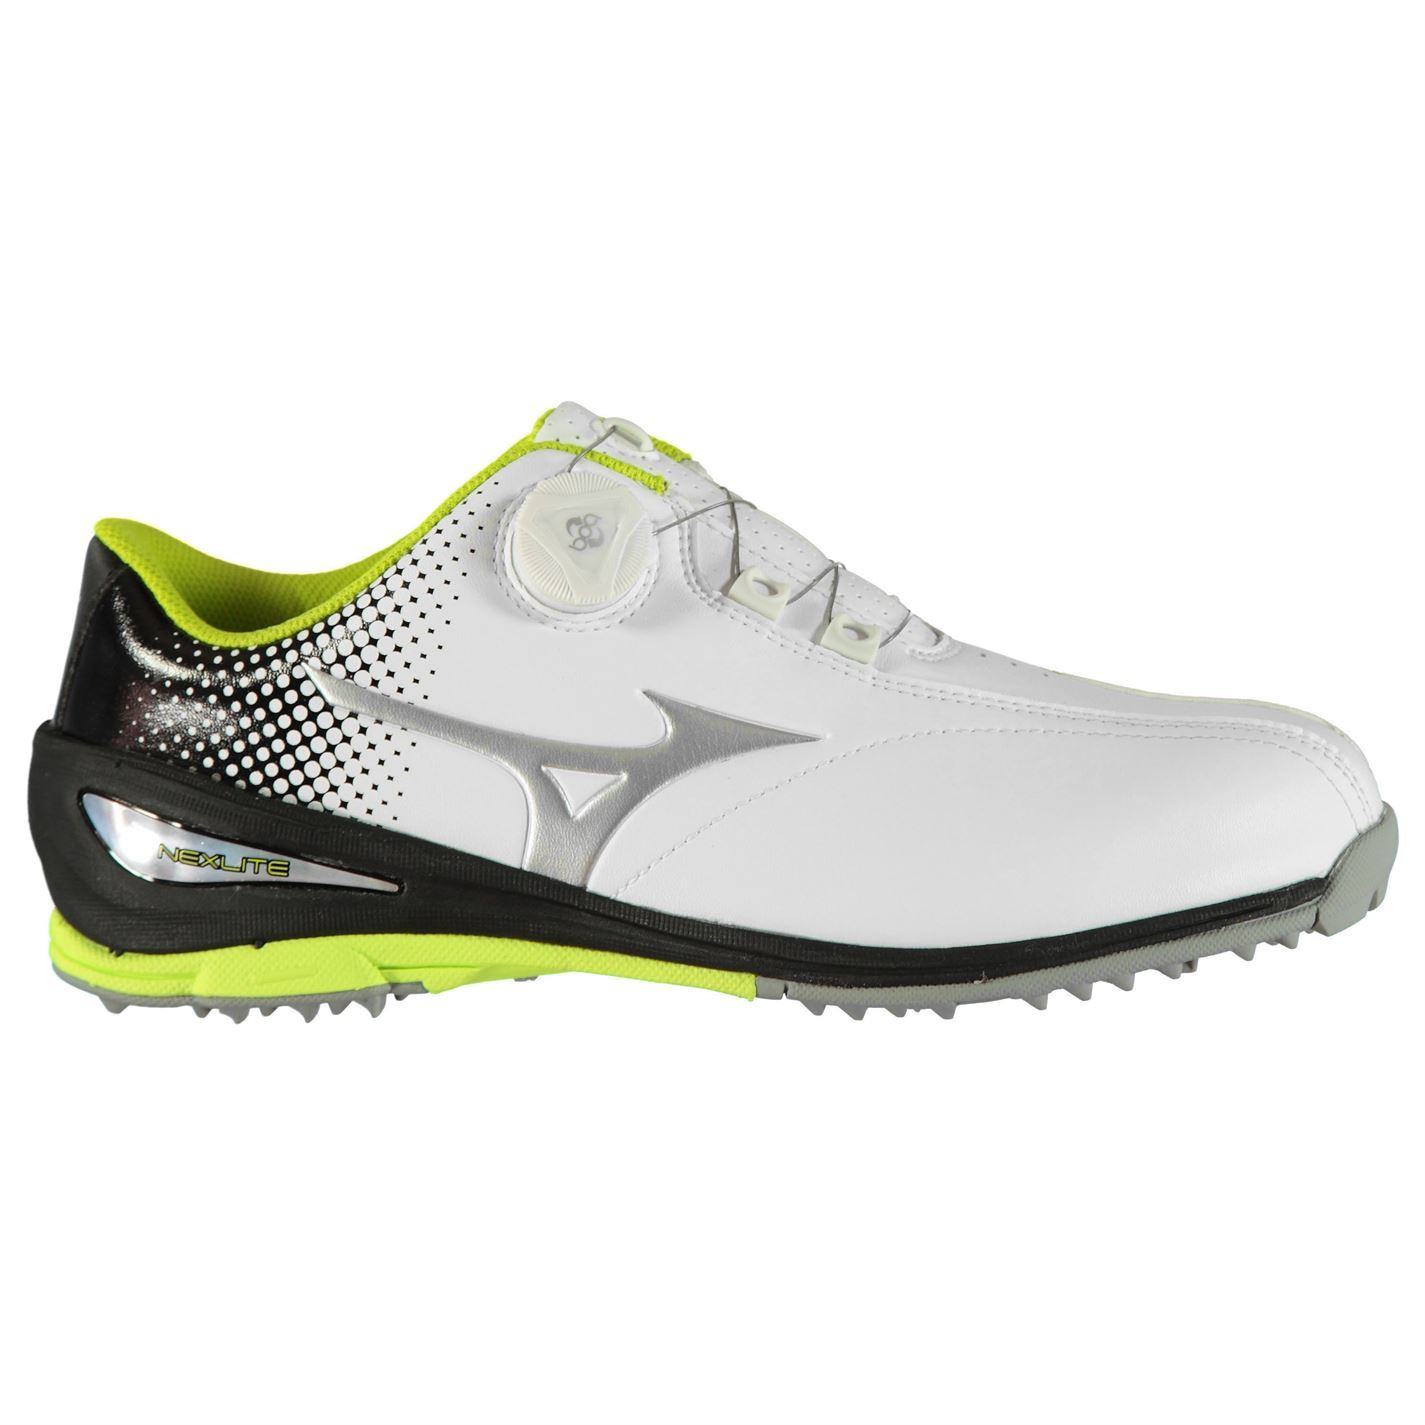 2137d5a2bc5b Mizuno-Nexlite-BOA-Golf-Shoes-Mens-Spikeless-Footwear thumbnail